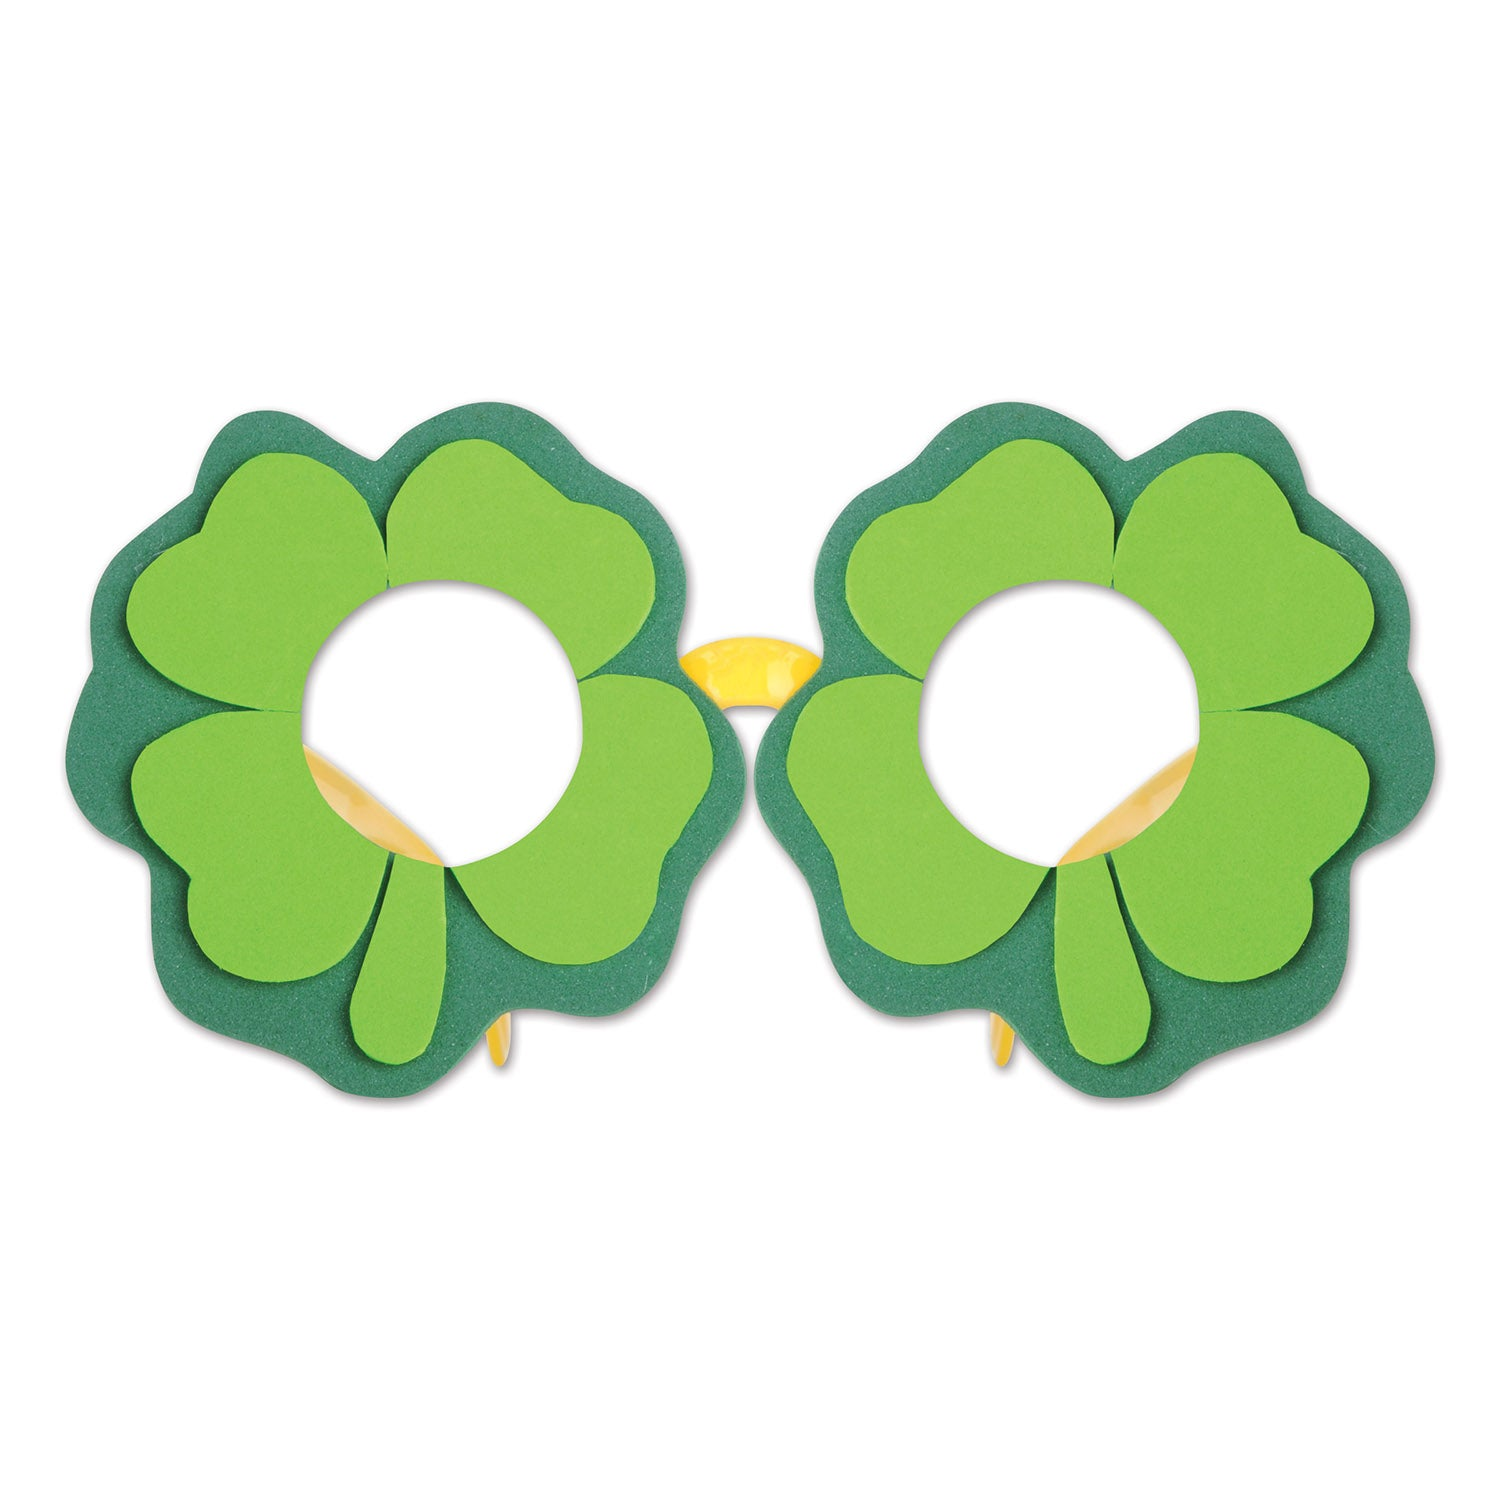 Shamrock Glasses by Beistle - St. Patricks Day Theme Decorations